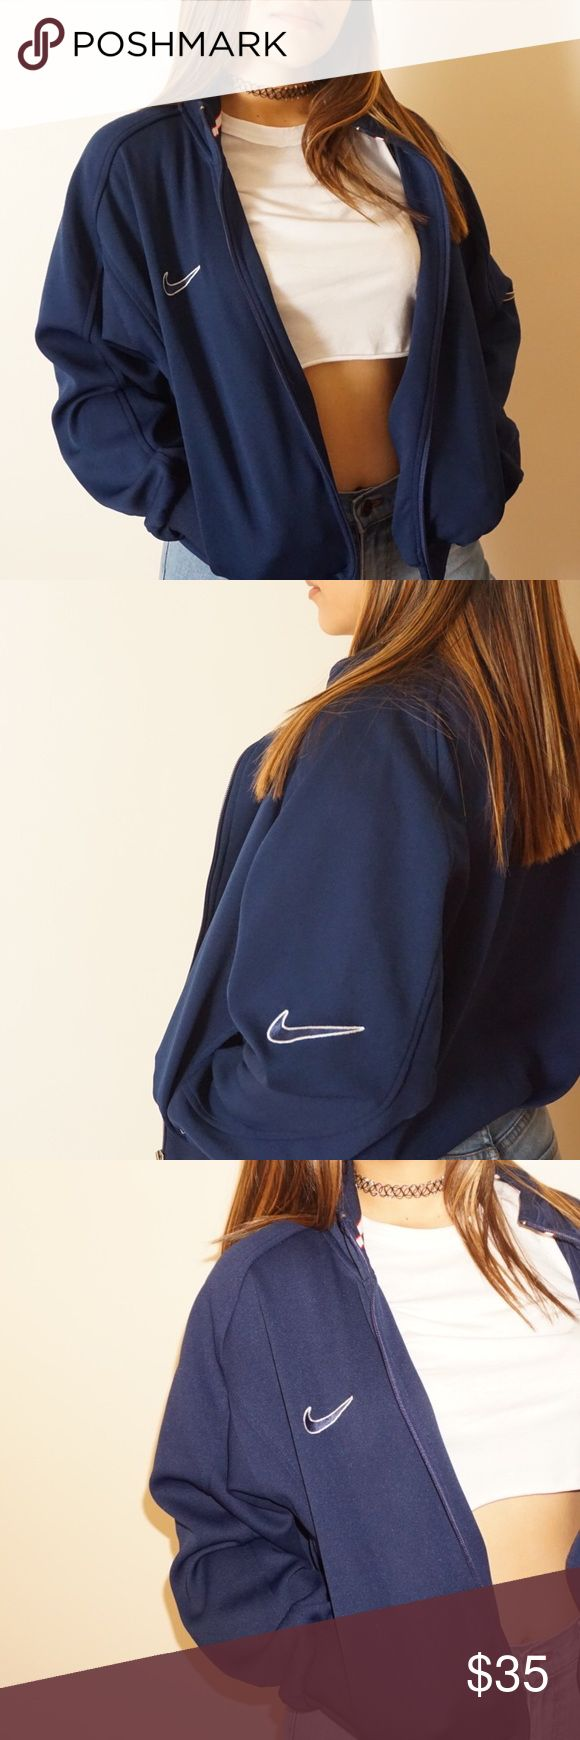 Vintage Nike Jacket Navy blue VINTAGE Nike Jacket! In beautiful condition! Nike Jackets  Coats